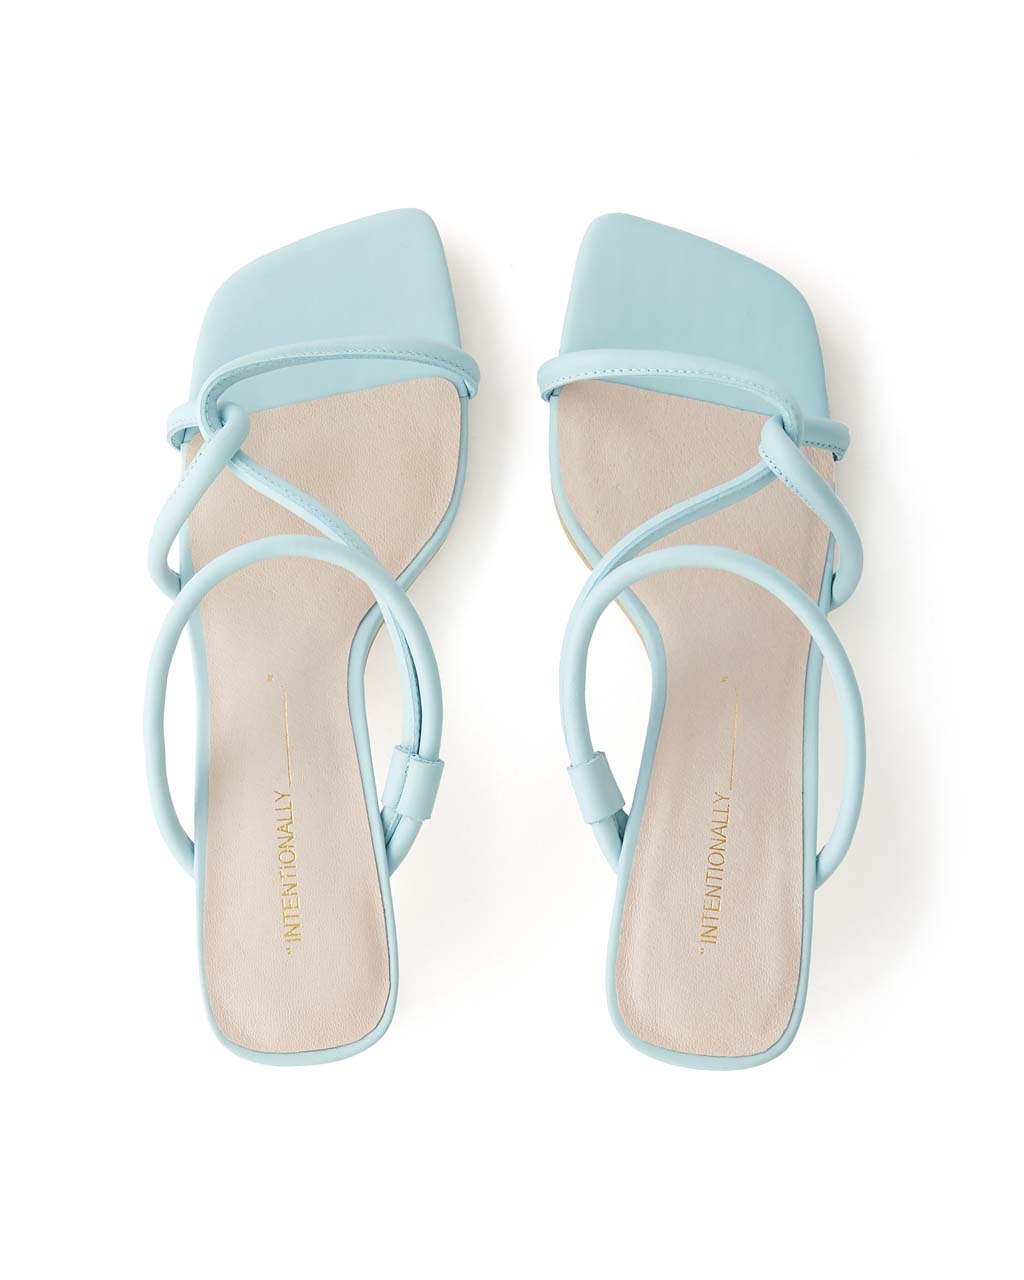 Willow Sandal - Baby Blue by